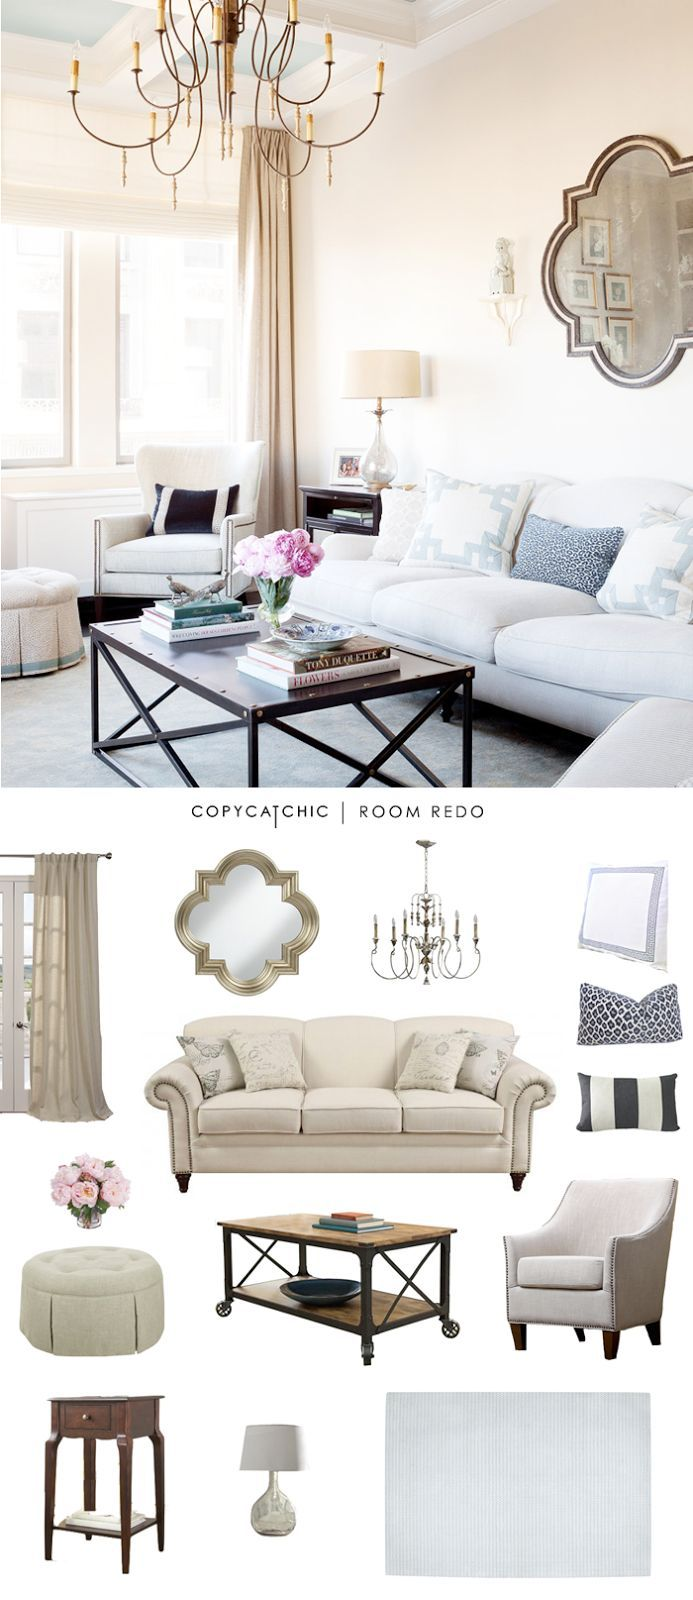 Copy Cat Chic Room Redo | Airy & Feminine Living Room